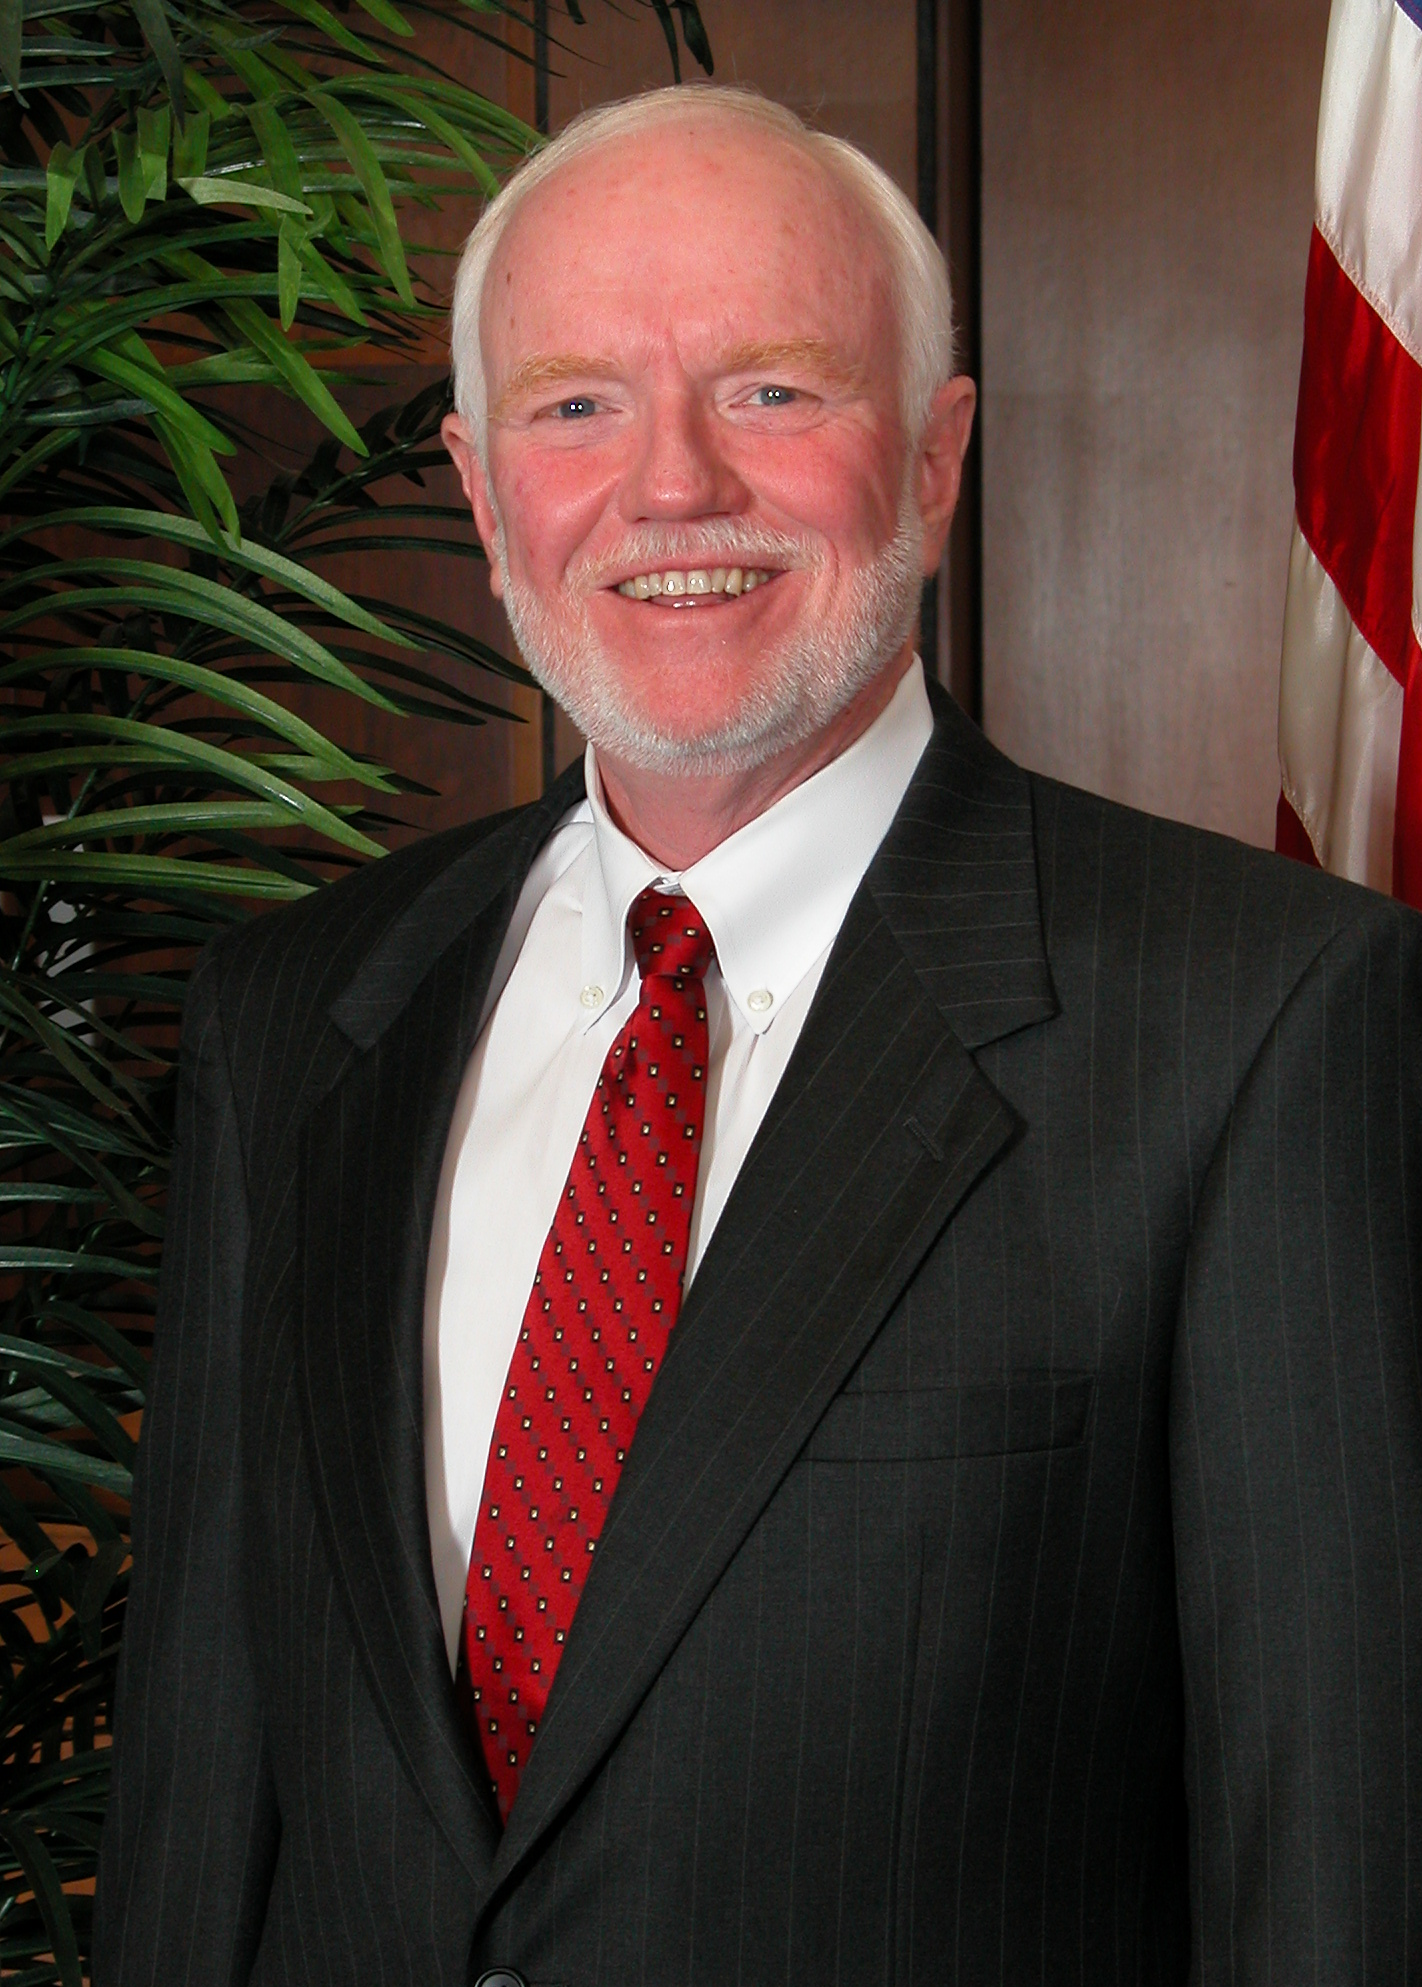 East Texas judge who oversaw 1,700 patent cases joins biggest IP law firm